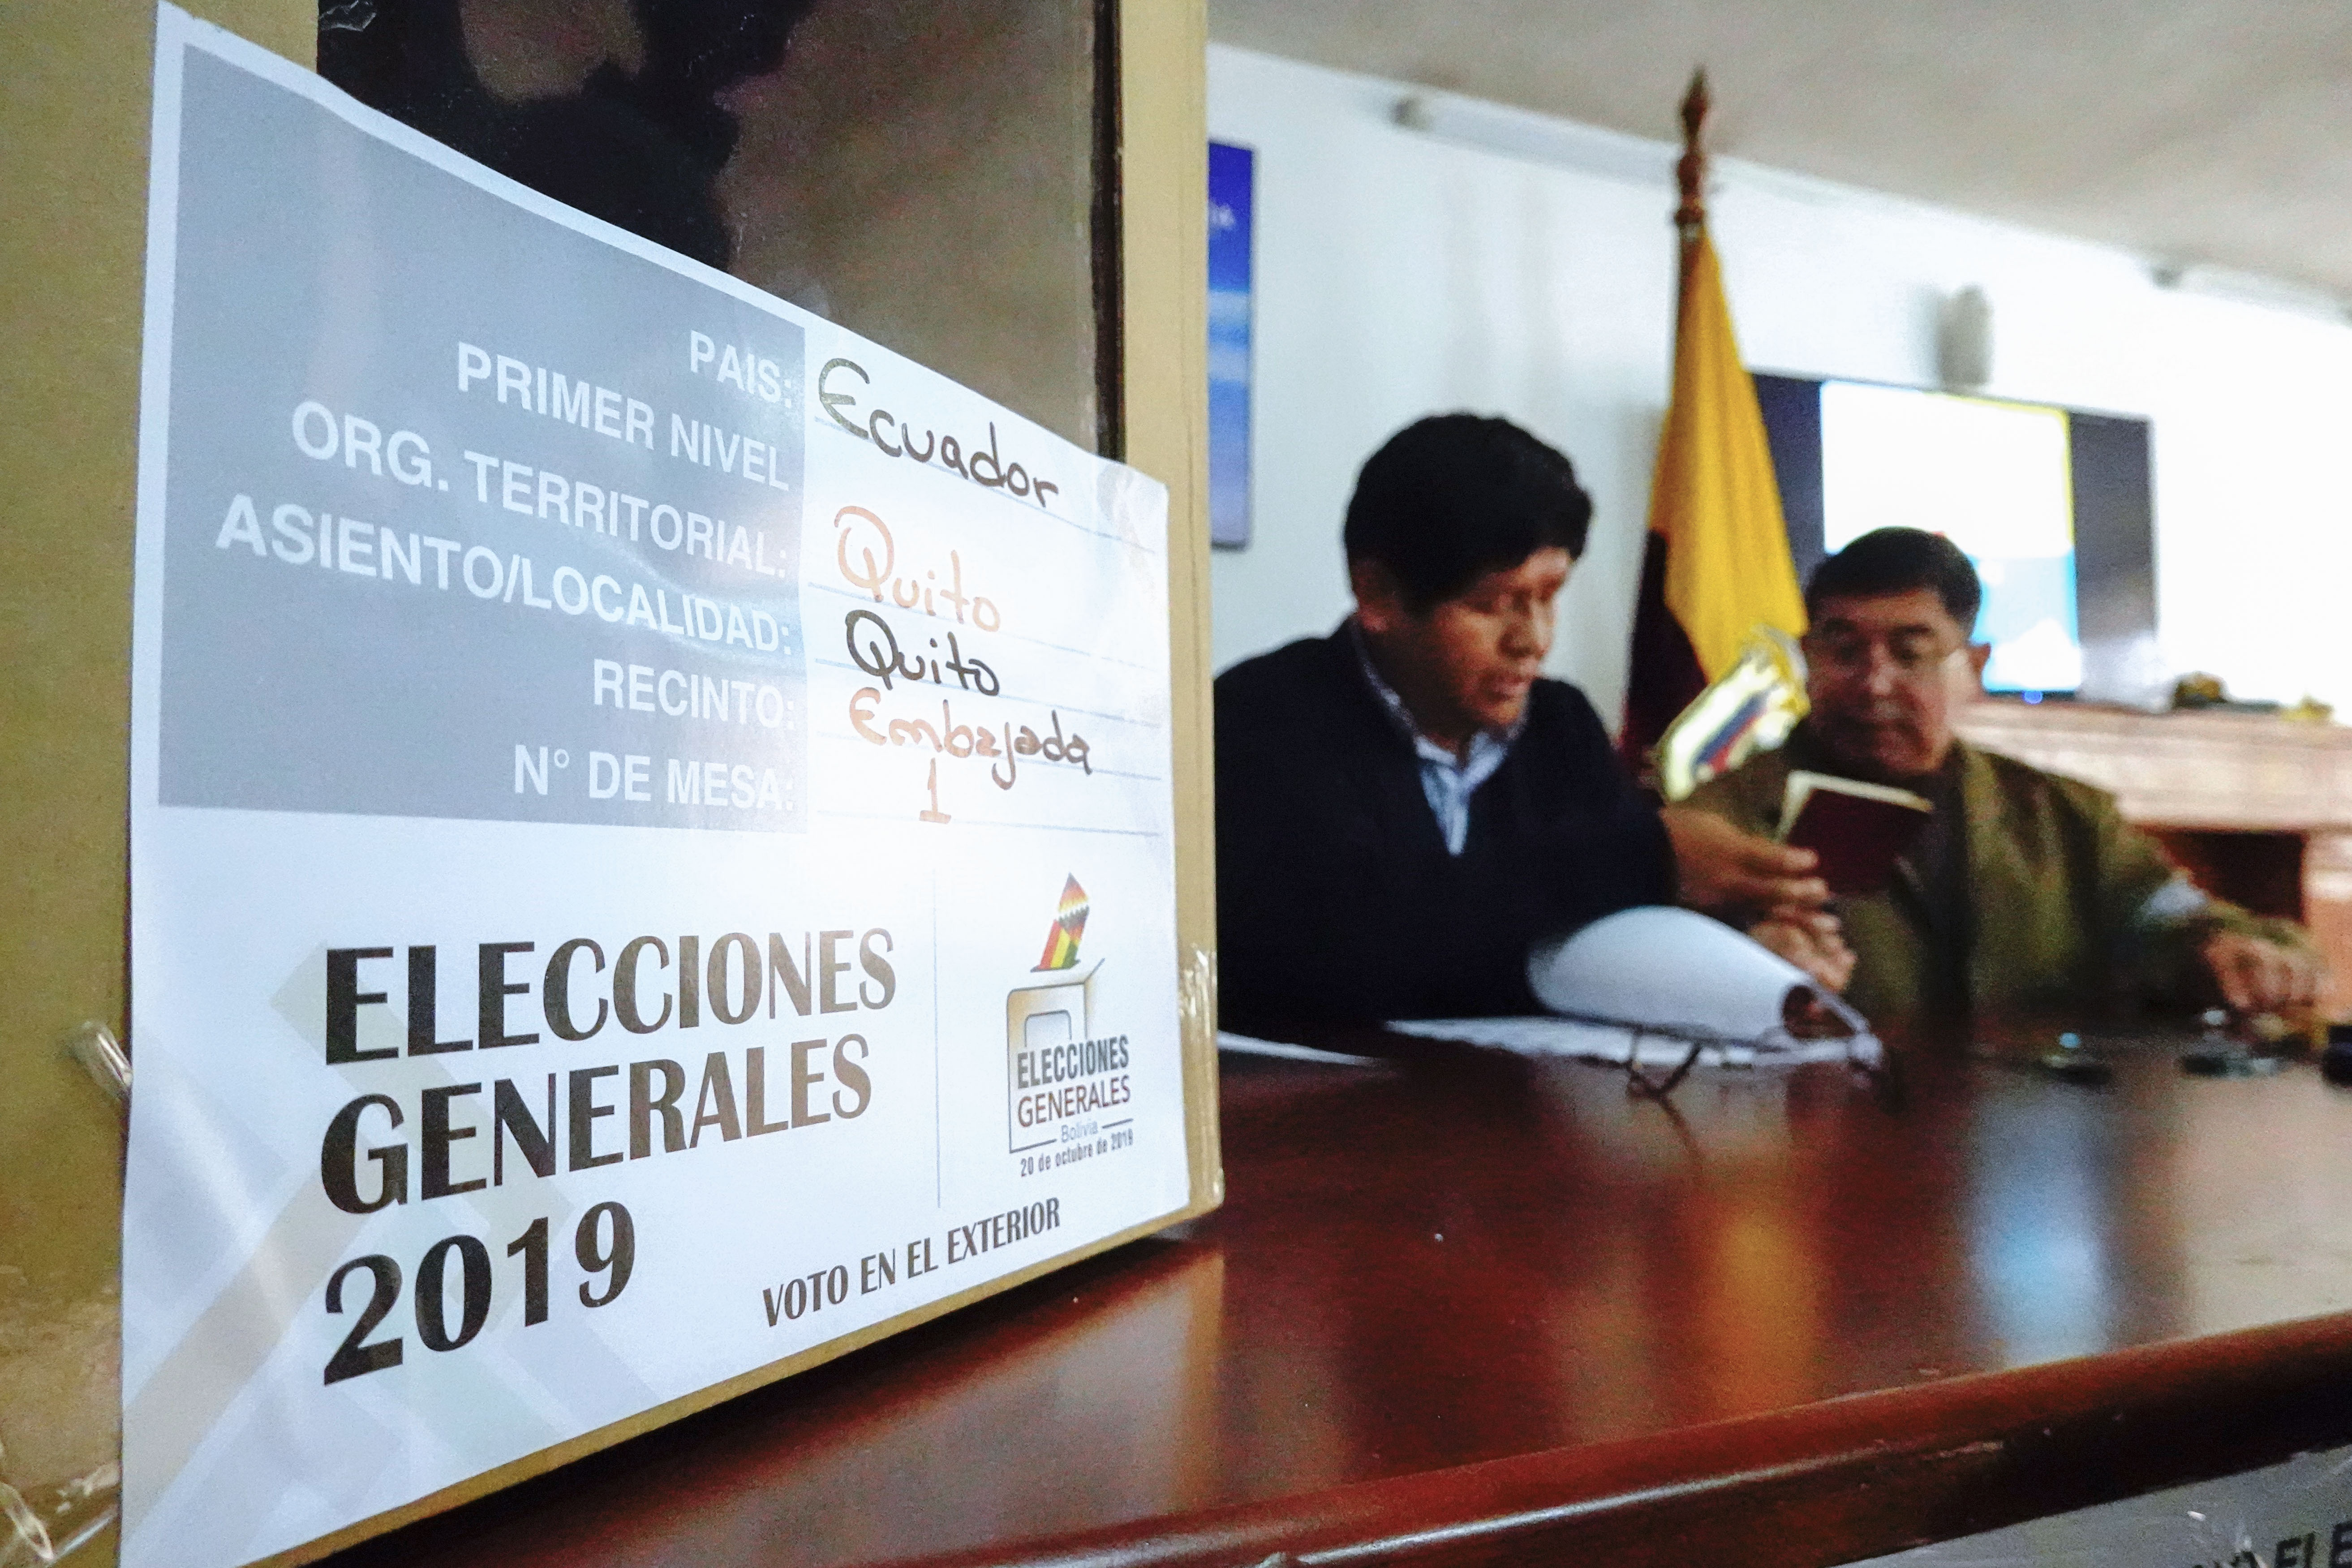 A Bolivian citizen residing in Ecuador prepares to vote during Bolivian presidential elections in Quito, on October20, 2019. - Polls opened in Bolivia Sunday with Evo Morales vying for a controversial fourth term as the country's first indigenous president amid allegations of corruption and authoritarianism. (Photo by RODRIGO BUENDIA / AFP) (Photo by RODRIGO BUENDIA/Afp/AFP via Getty Images)